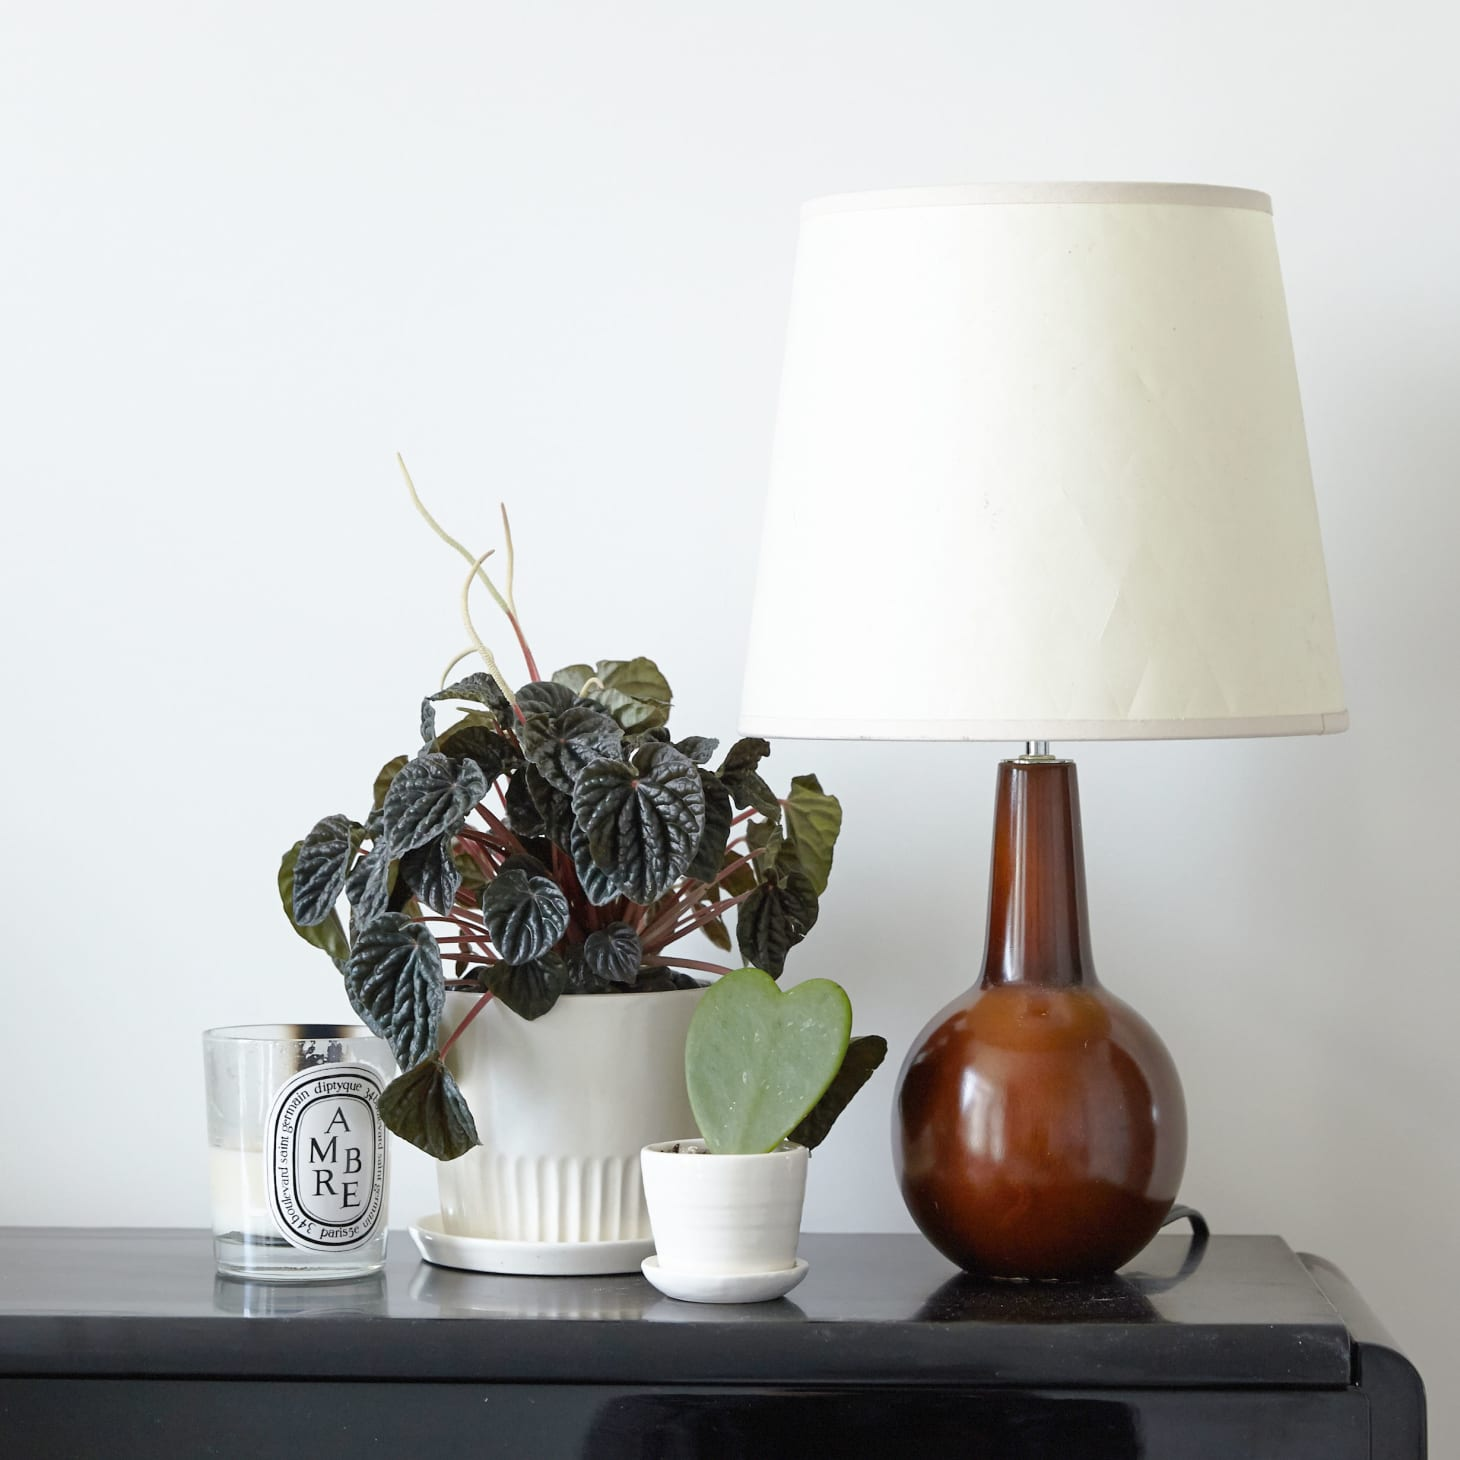 8 Houseplants That Can Survive Urban Apartments, Low Light